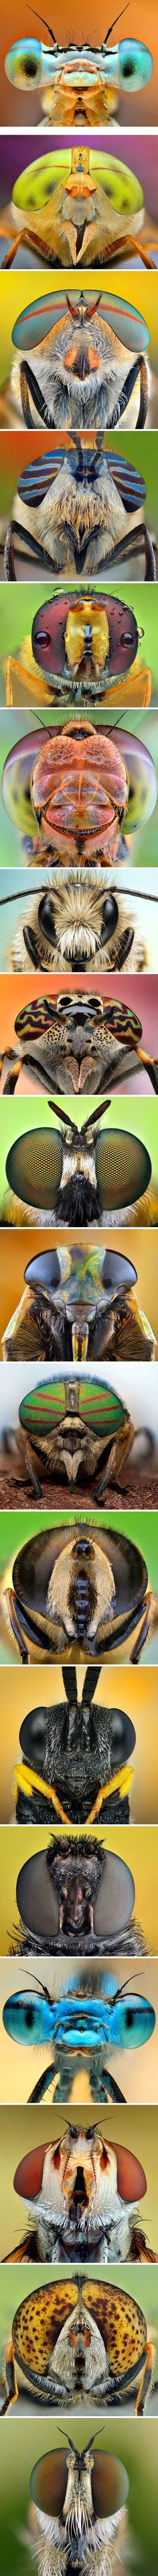 Photographer Ireneusz Irass Waledzik - A collection of fascinating facetted eyes of dragonflies, bees and flies. #Insects #Eyes